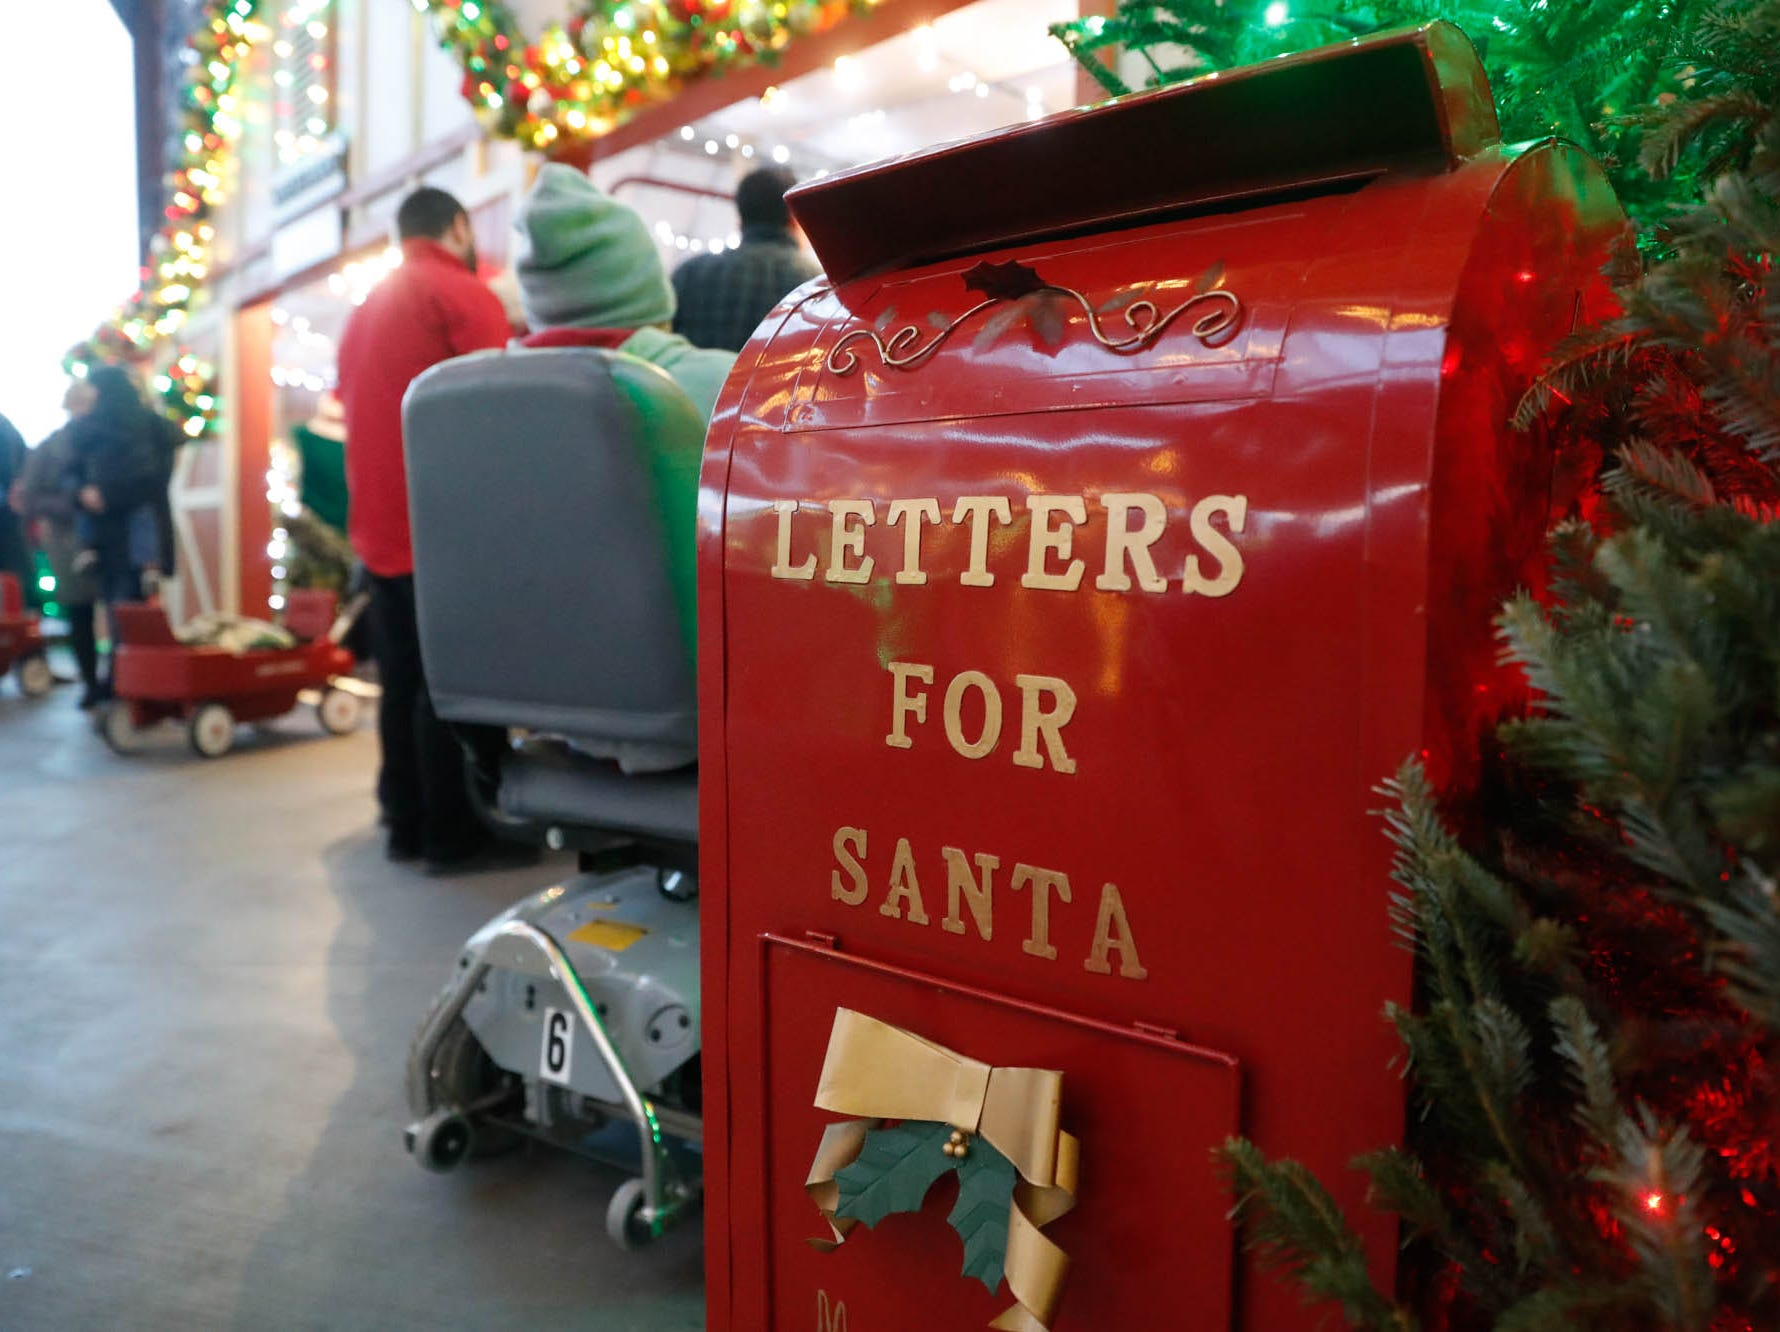 Guests can leave letters to Santa during Christmas at the Indianapolis Zoo on Wednesday, Dec. 19, 2018.